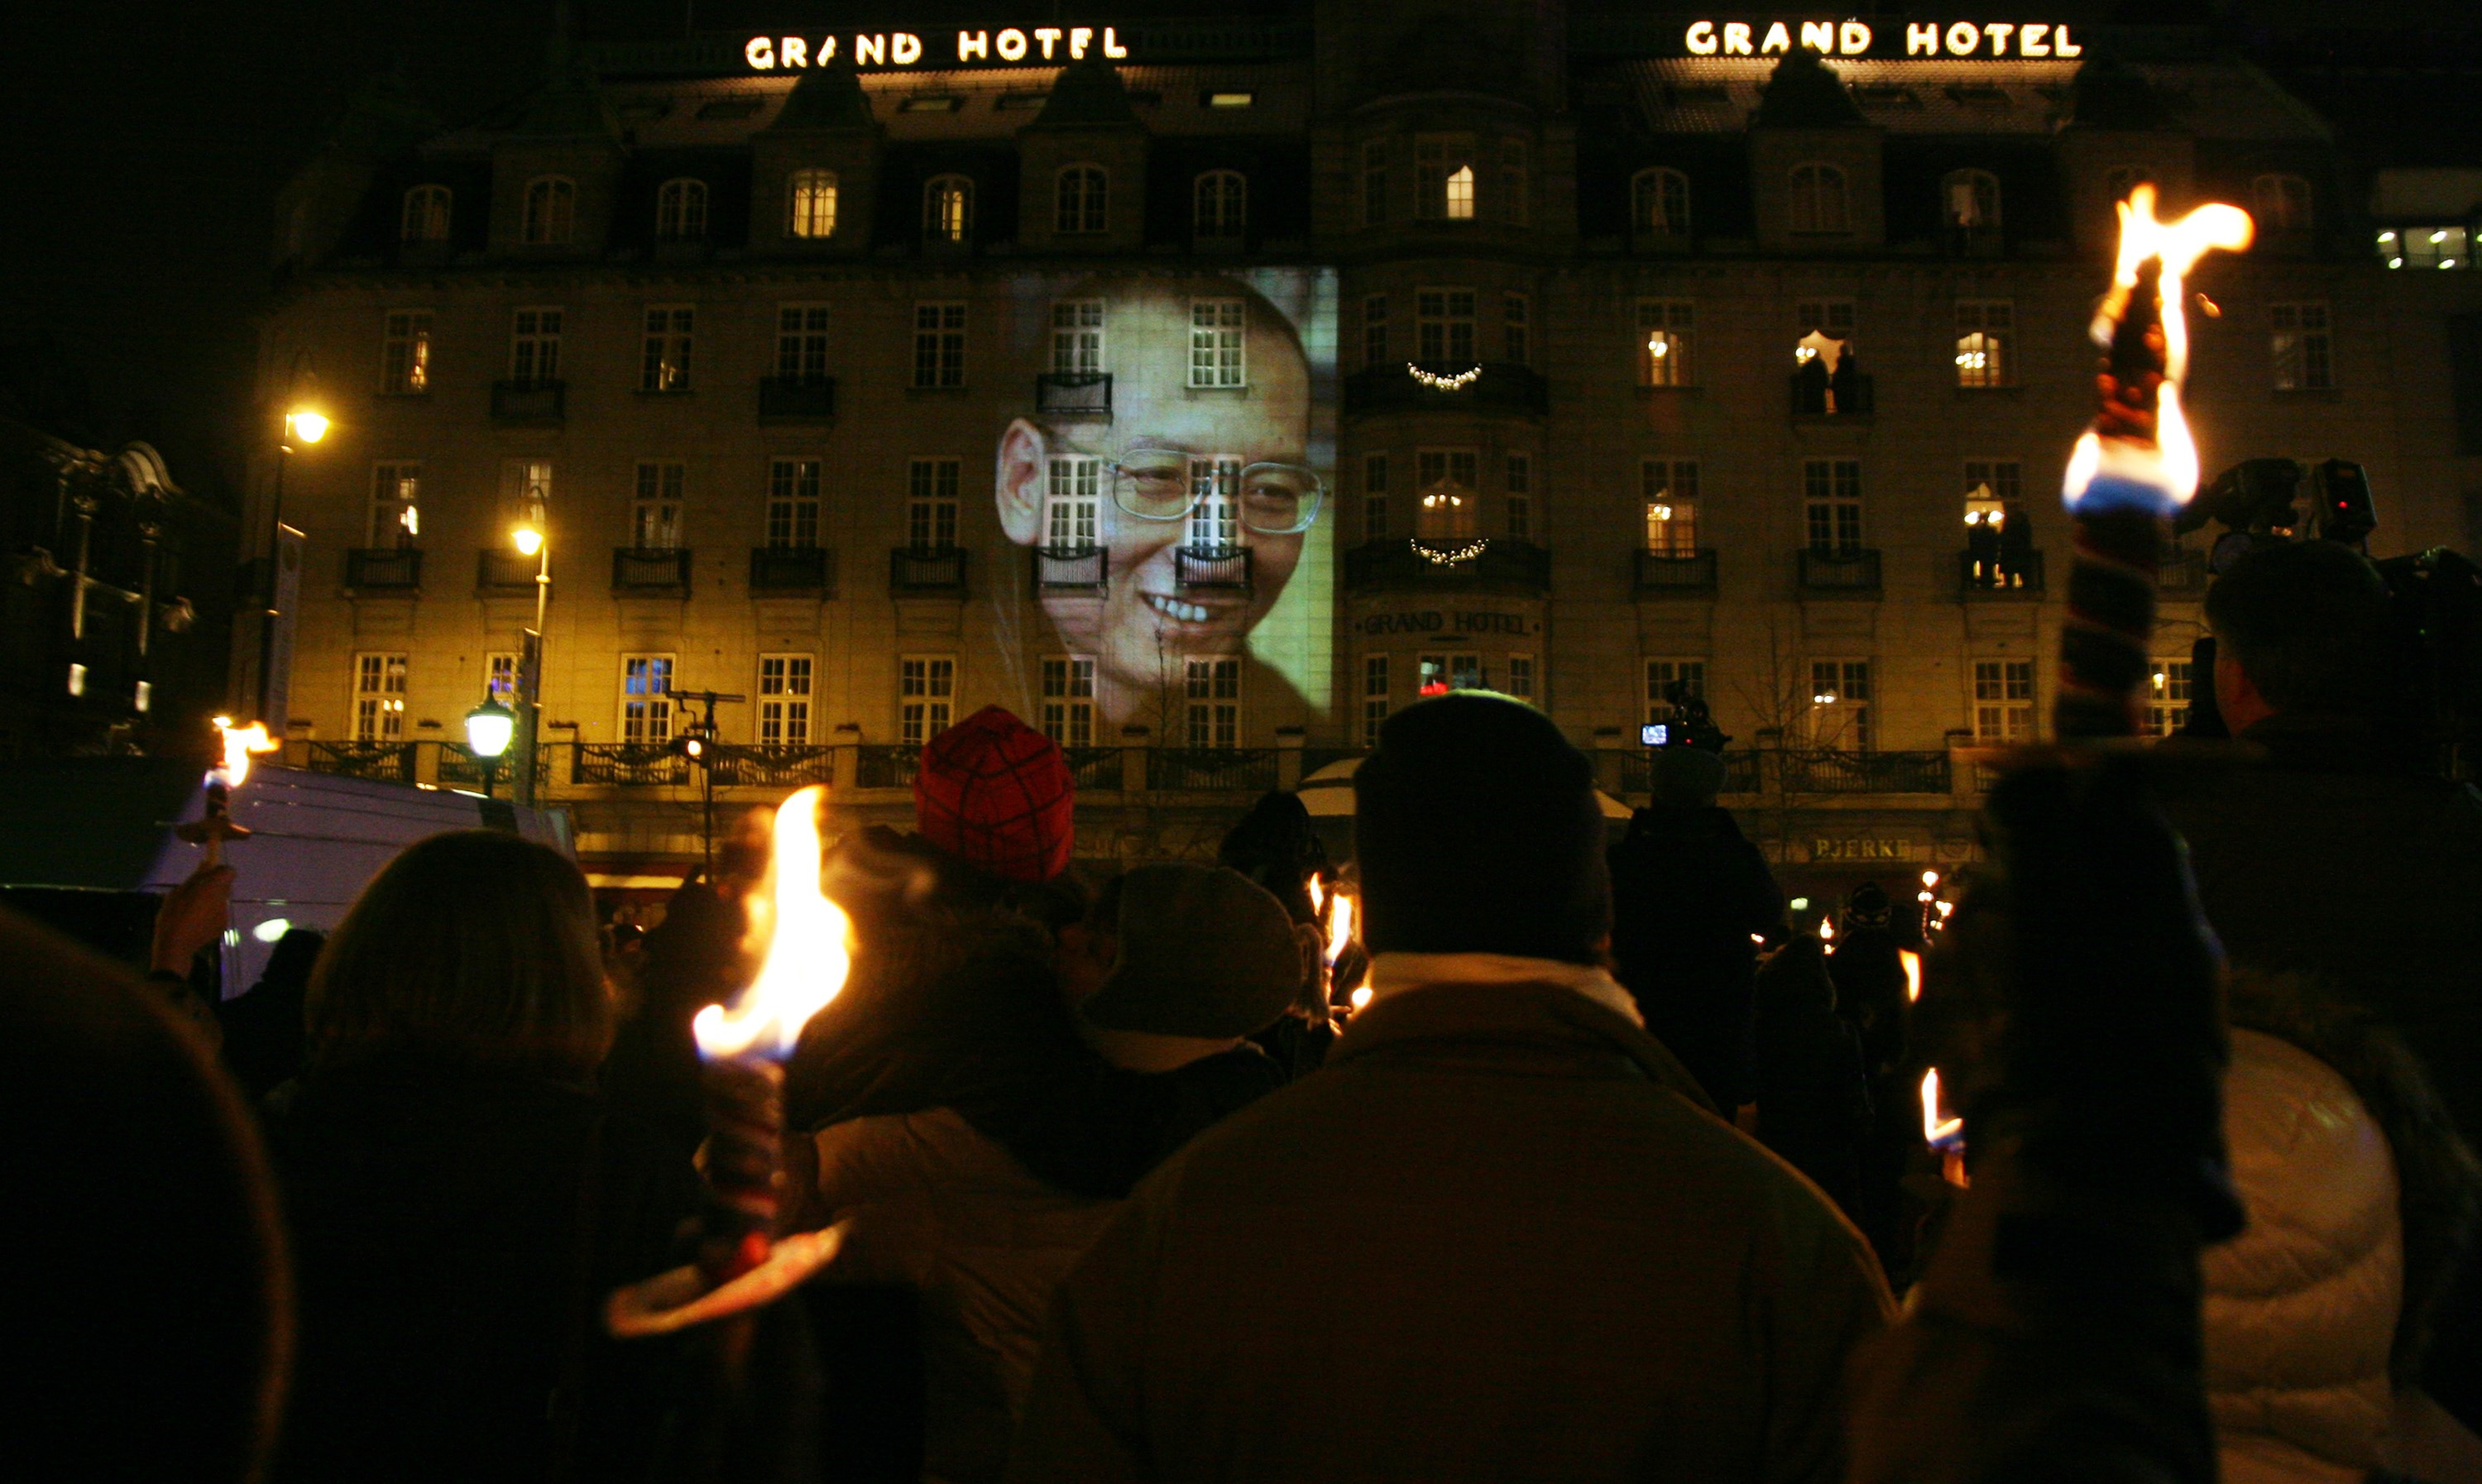 Liu Xiaobo's image projected onto an Oslo hotel after he was awarded the Nobel Peace Prize (Photo: Flickr/Aktiv|Oslo.no)